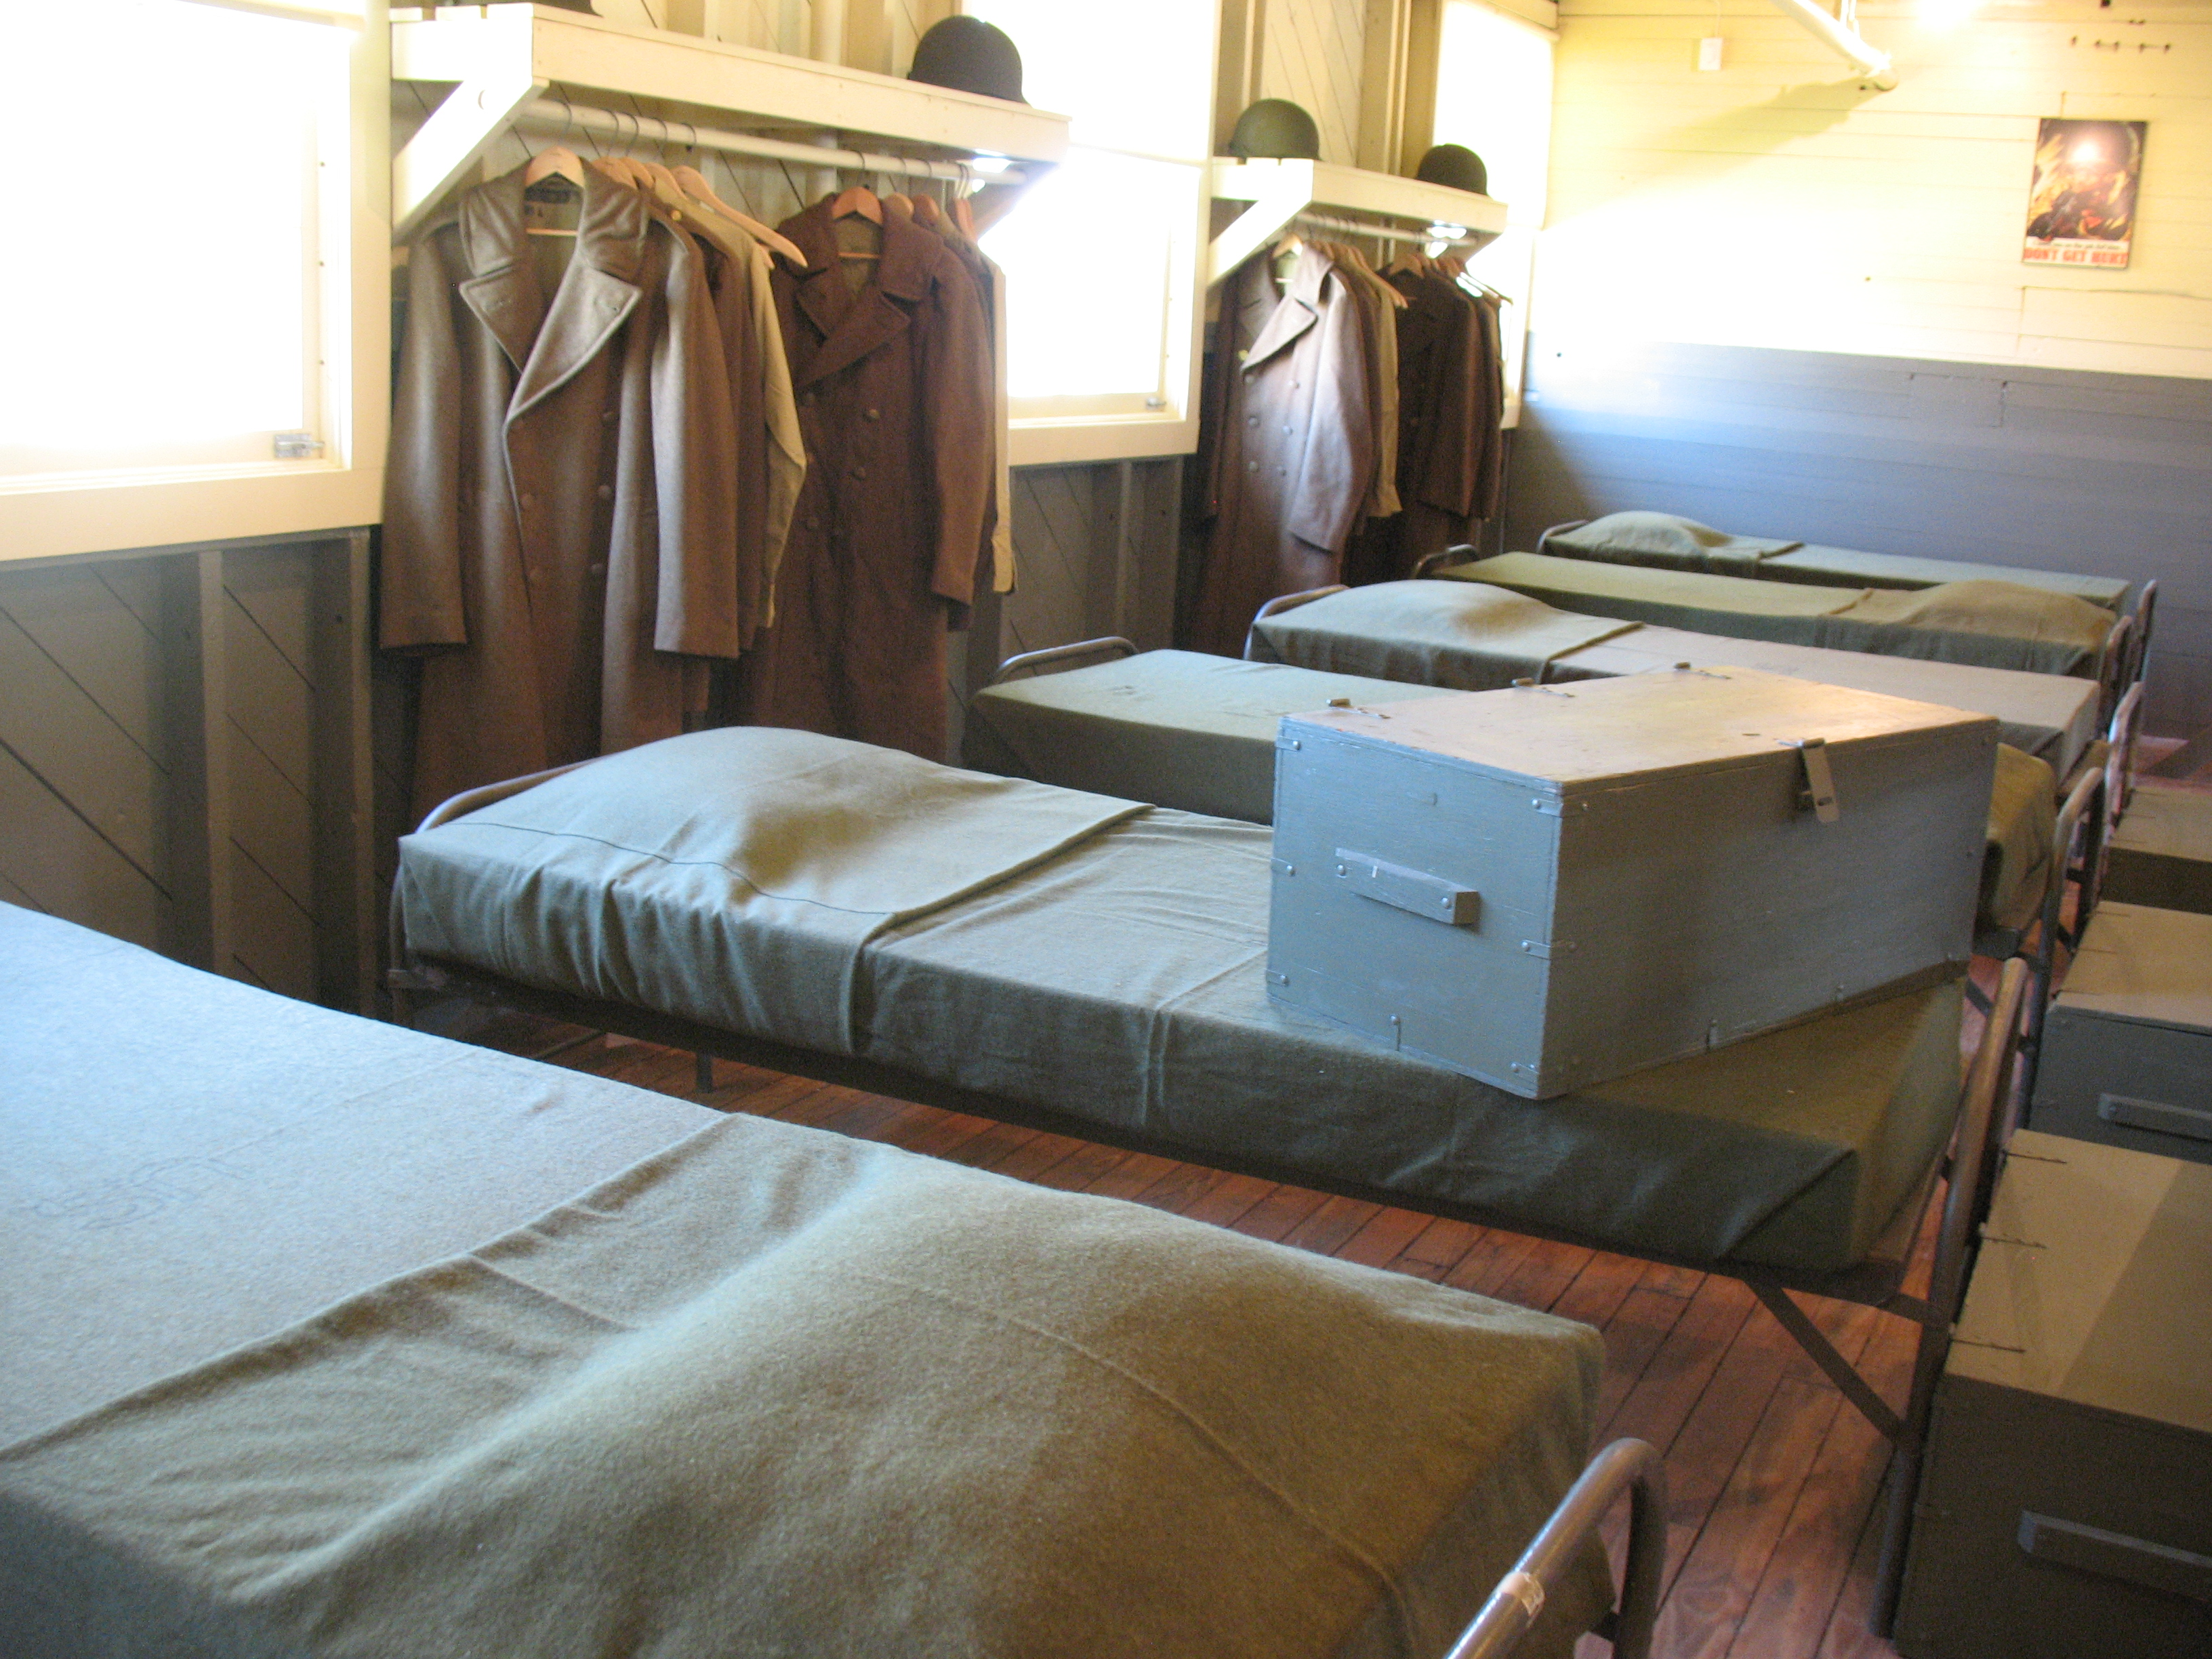 File:WWII-Footlocker-on-bed.jpg - Wikimedia Commons